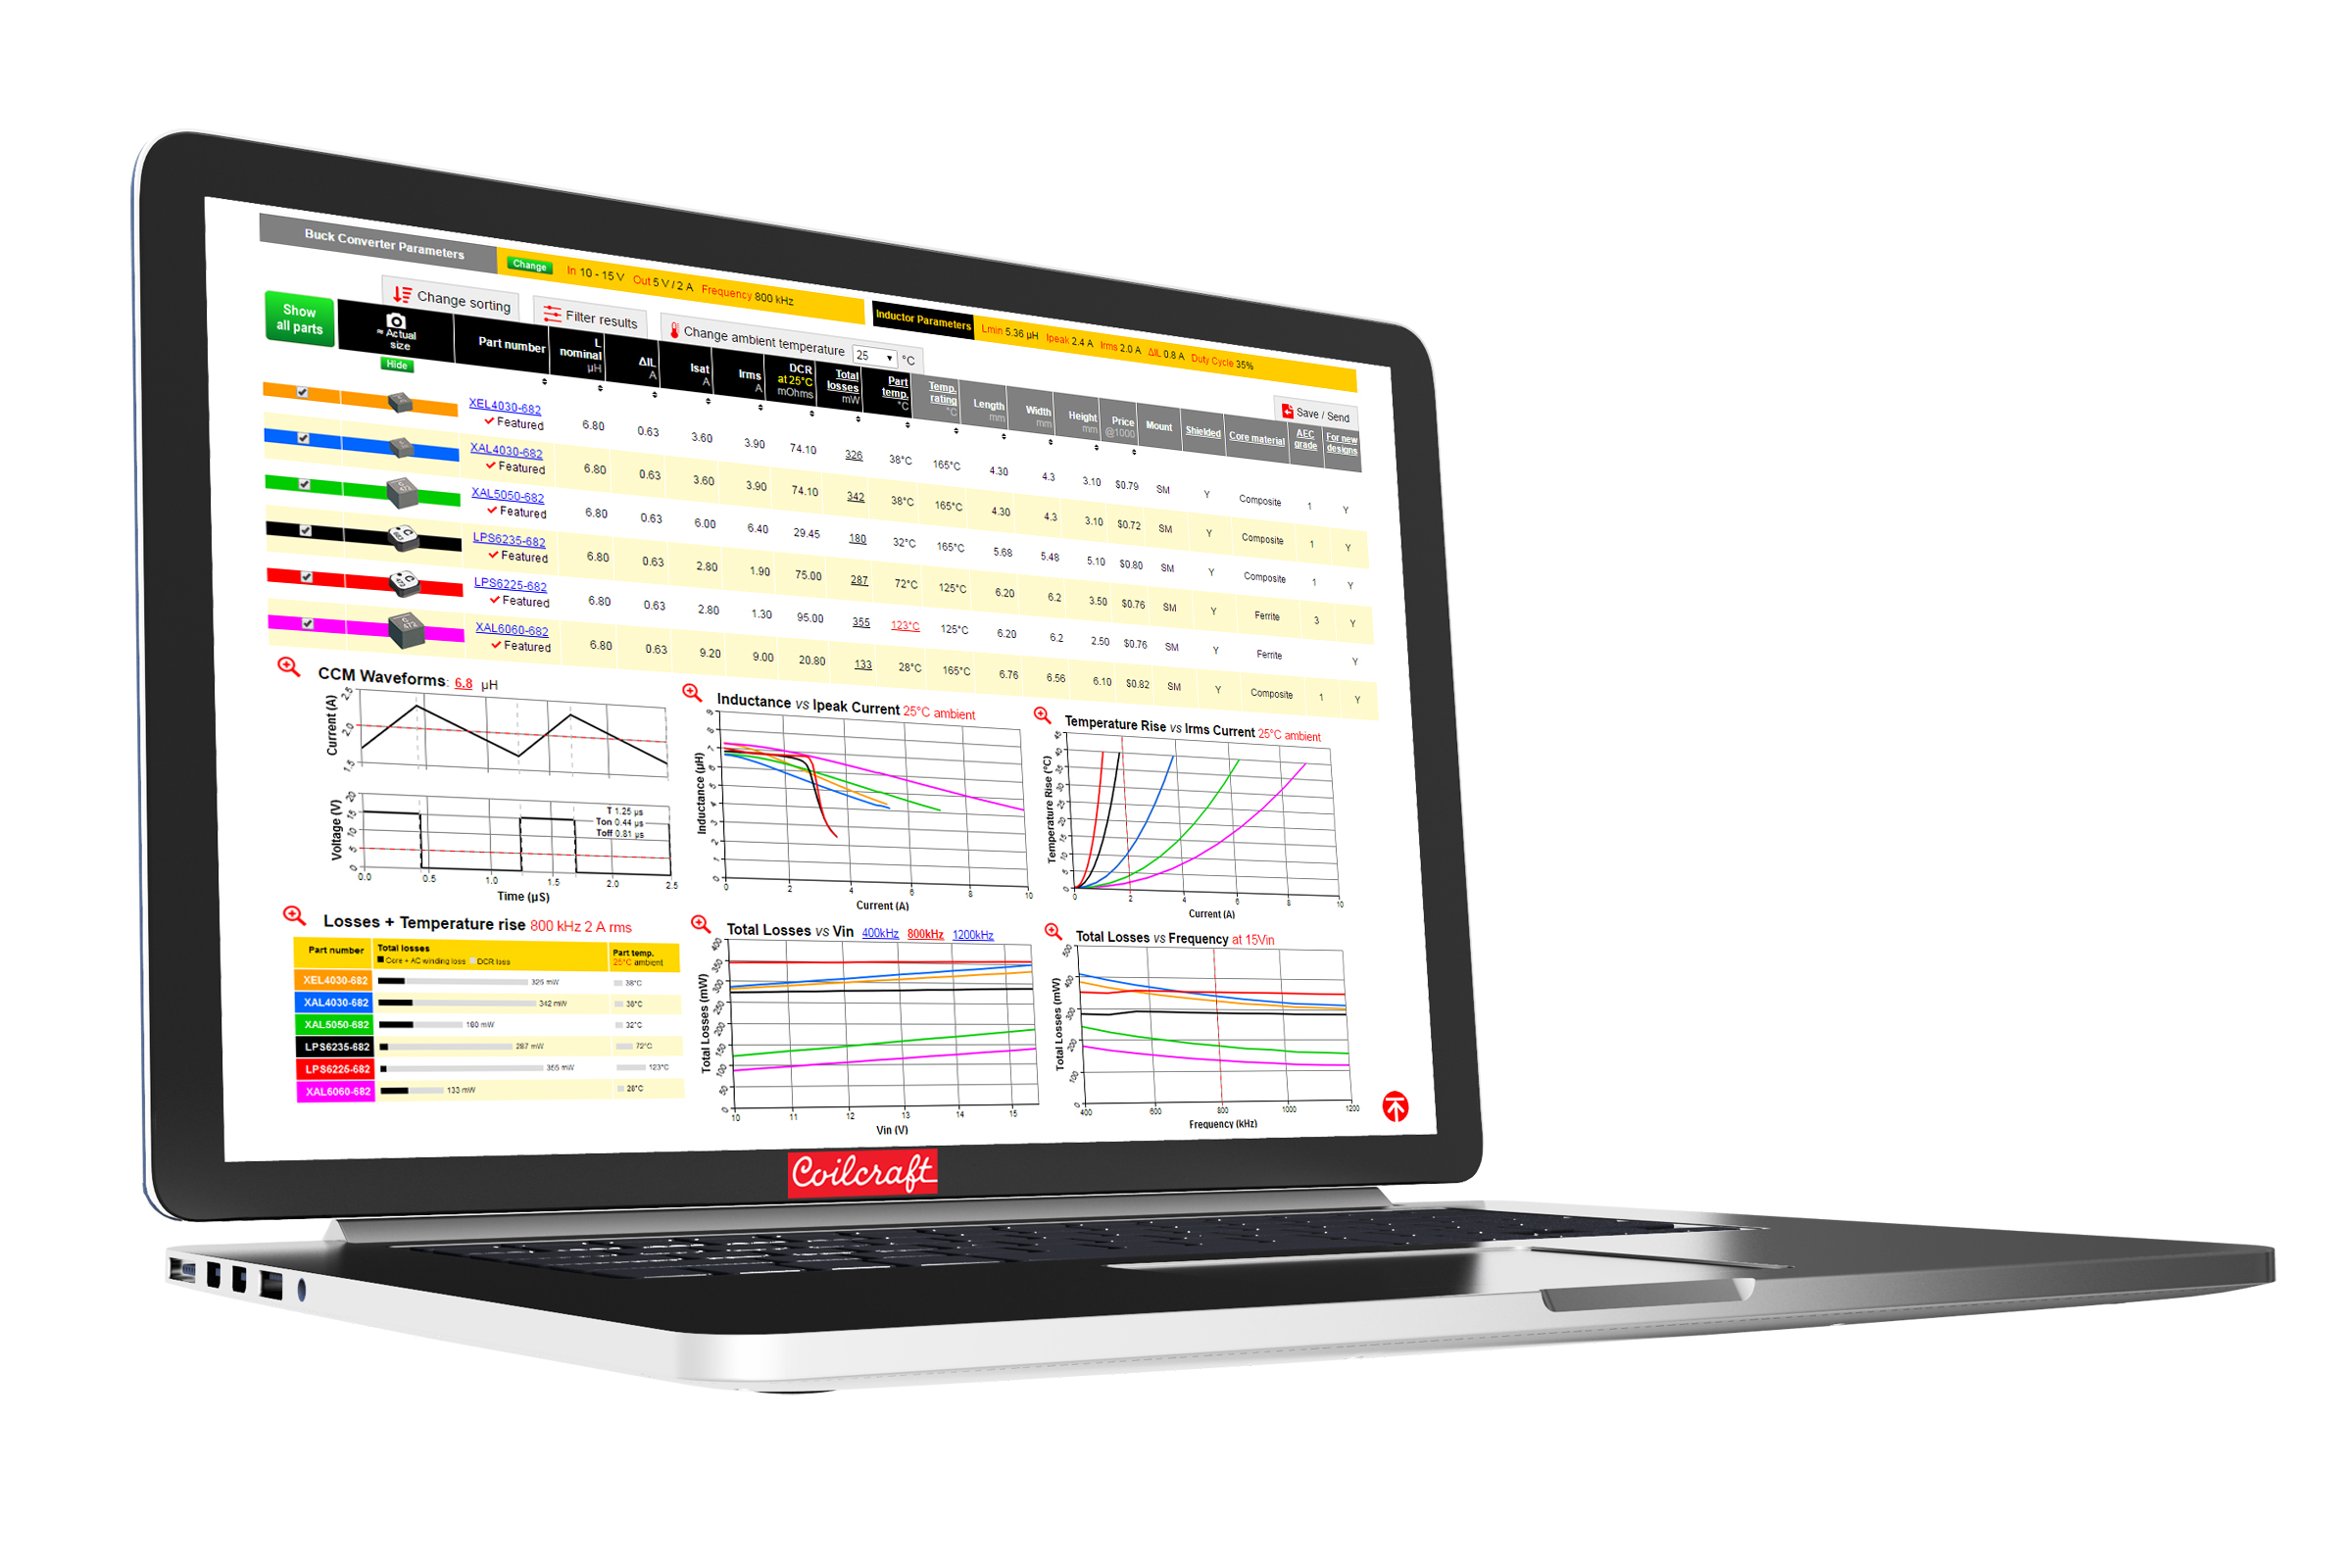 Coilcraft's New Power Inductor Selection Tool Provides Significantly More Performance Data